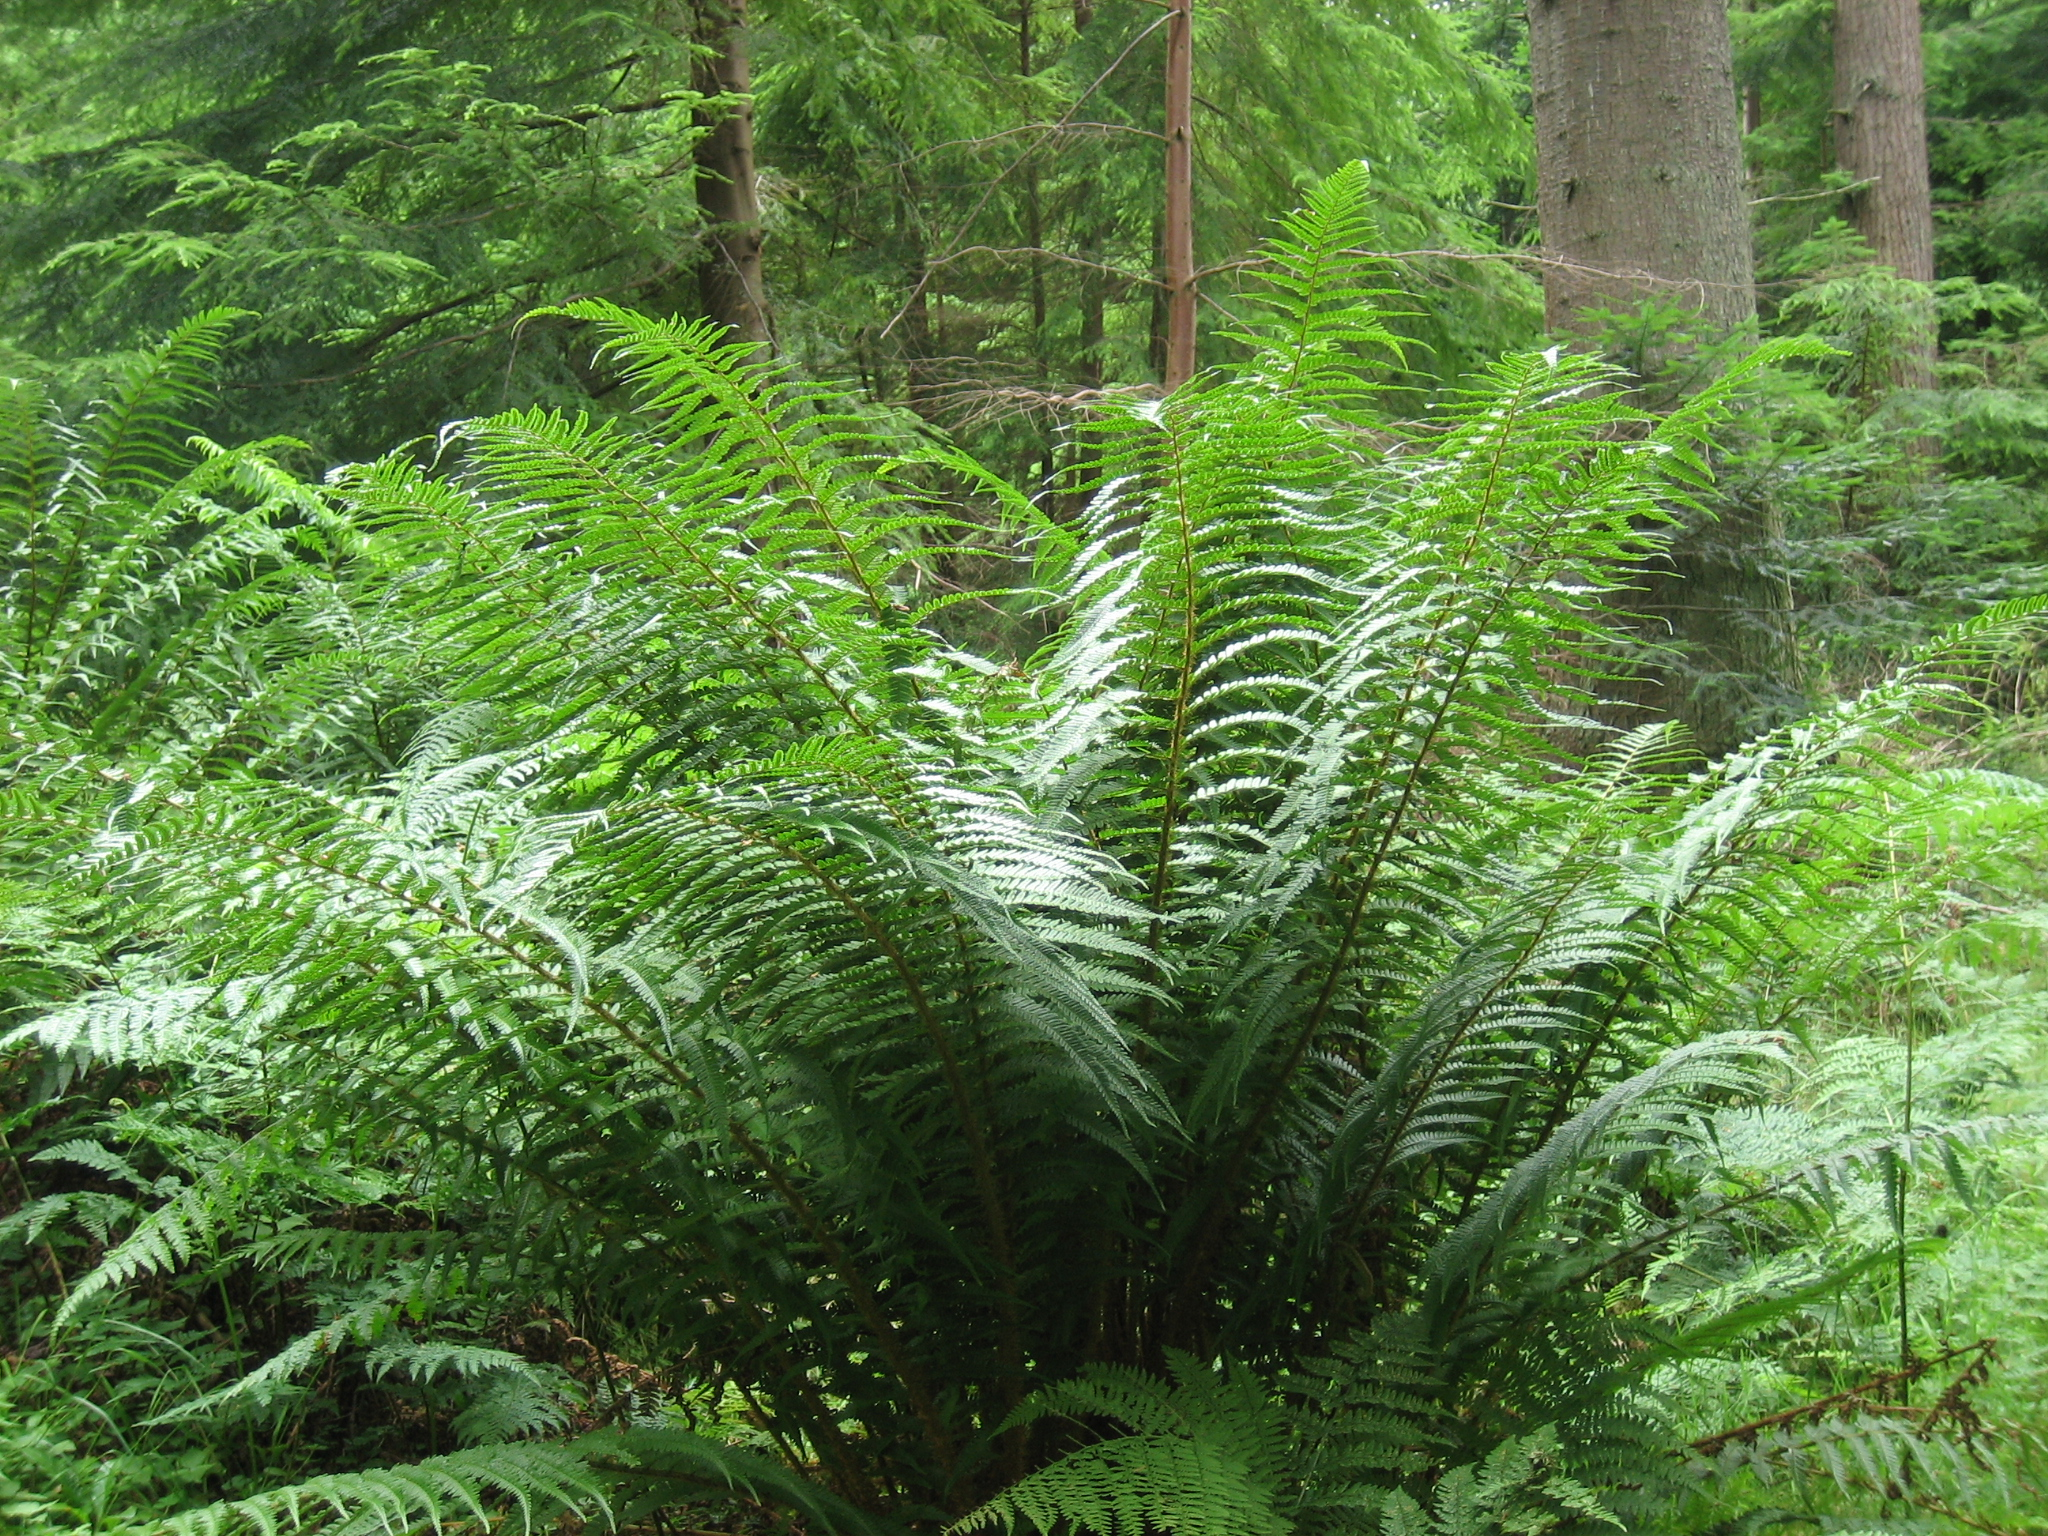 Scaly male fern